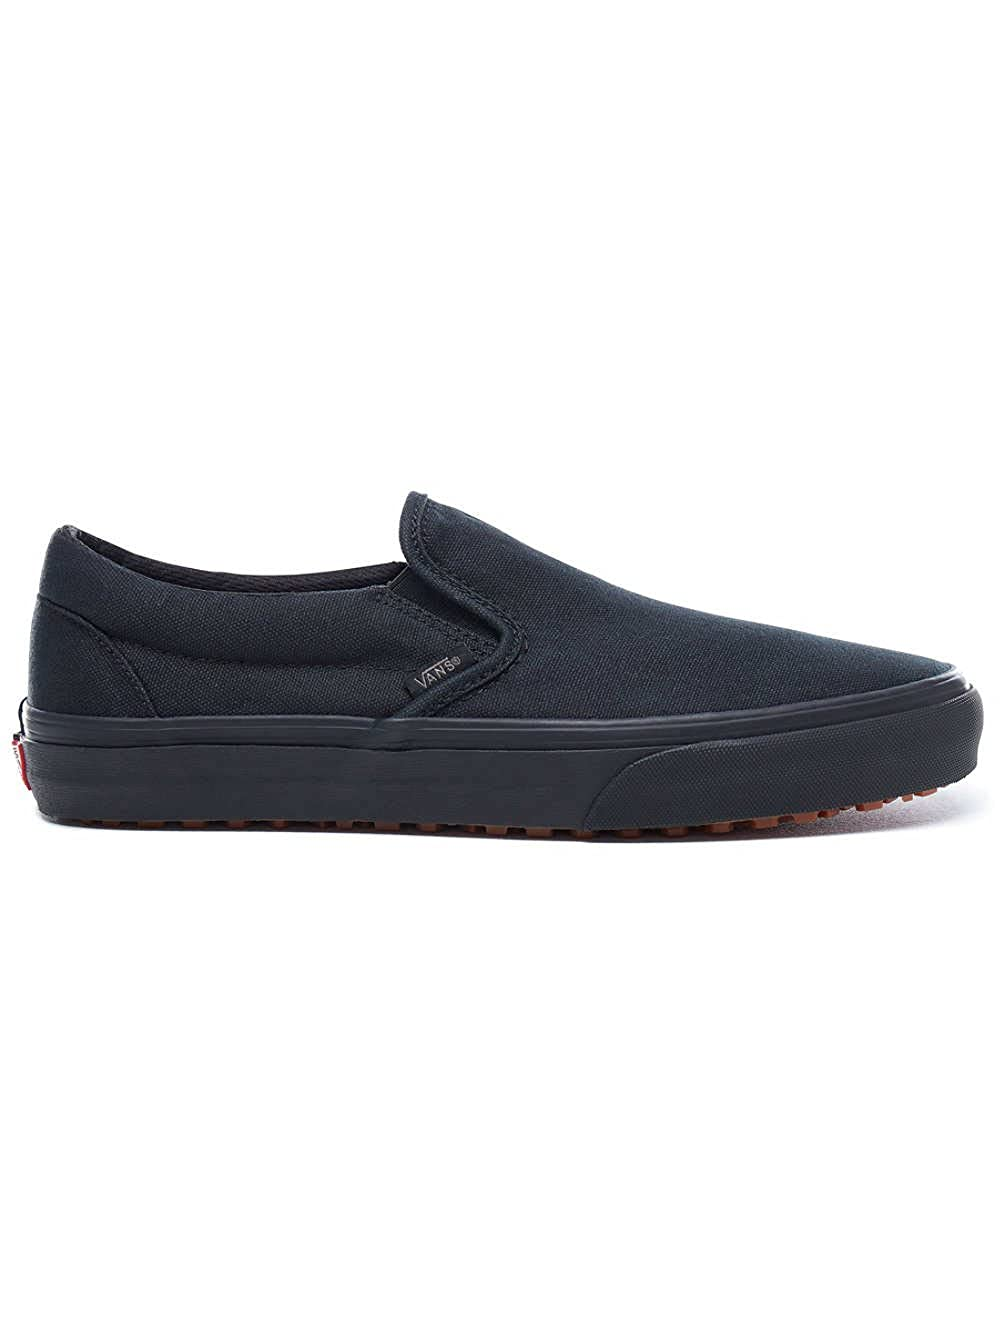 On Made For S Slip The Herren Classic Uc Vans Makers yvfIbY76g